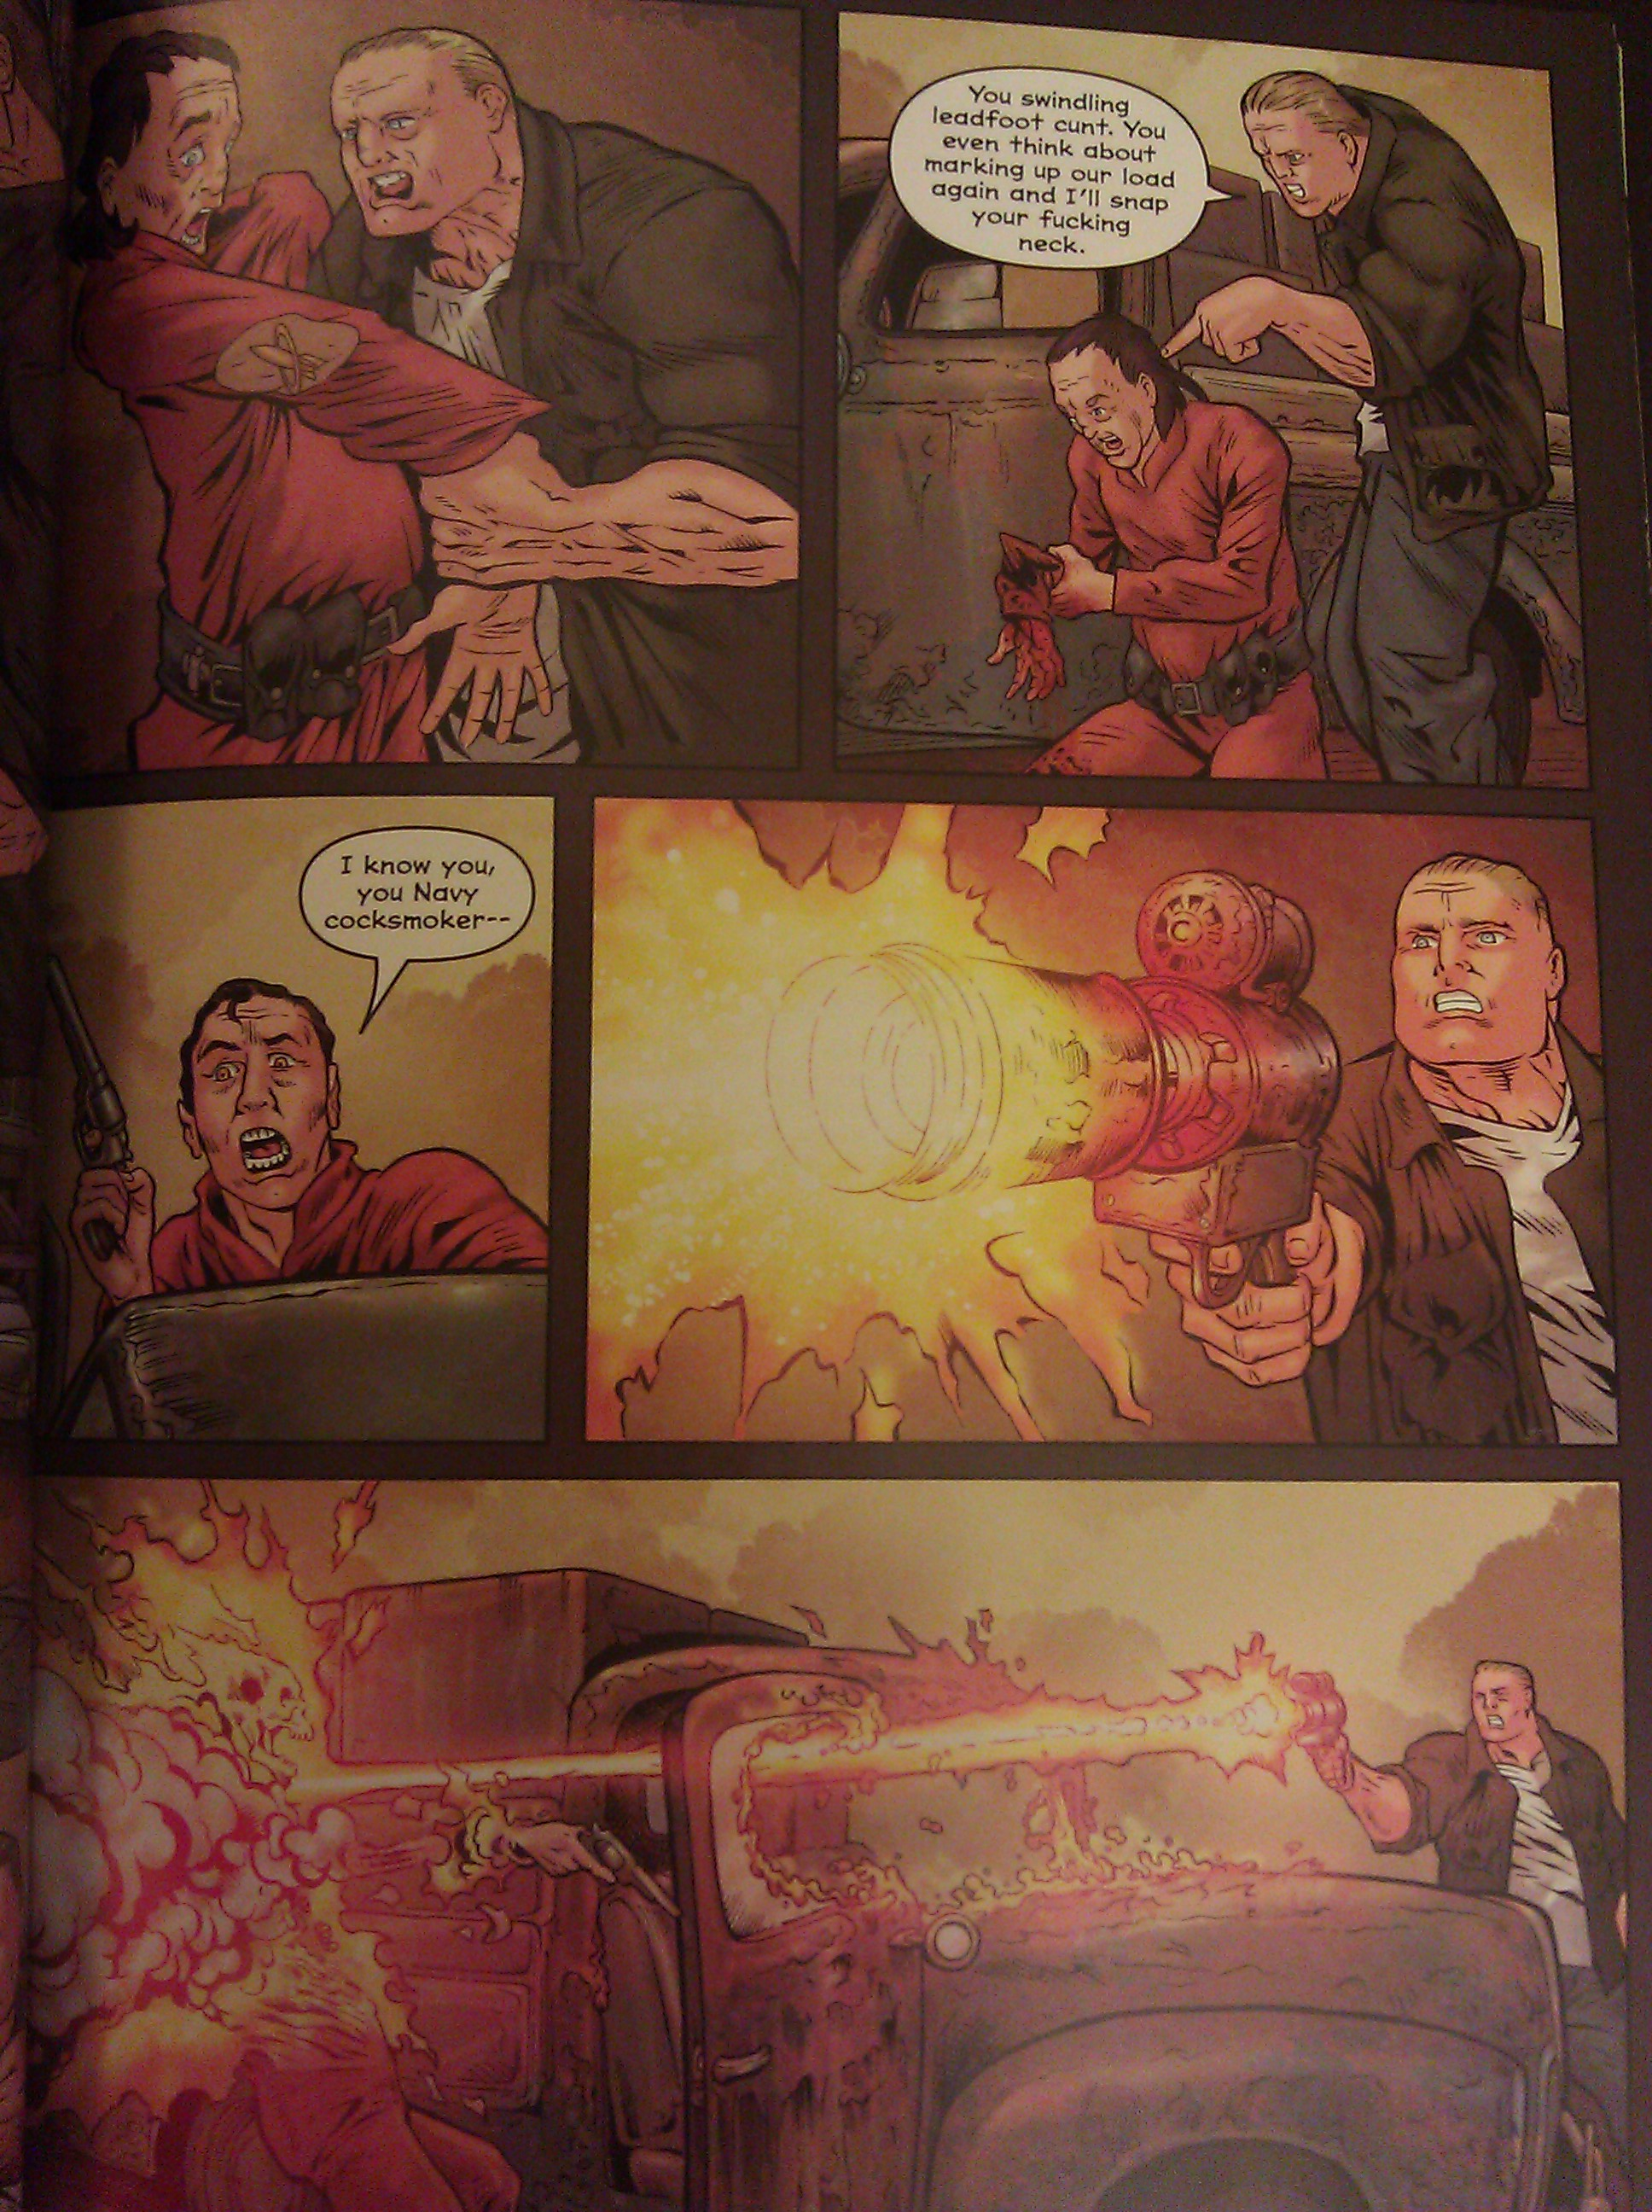 A man breaks another man's arm, crude insults are made, and a man is half-incinerated by a ray gun.